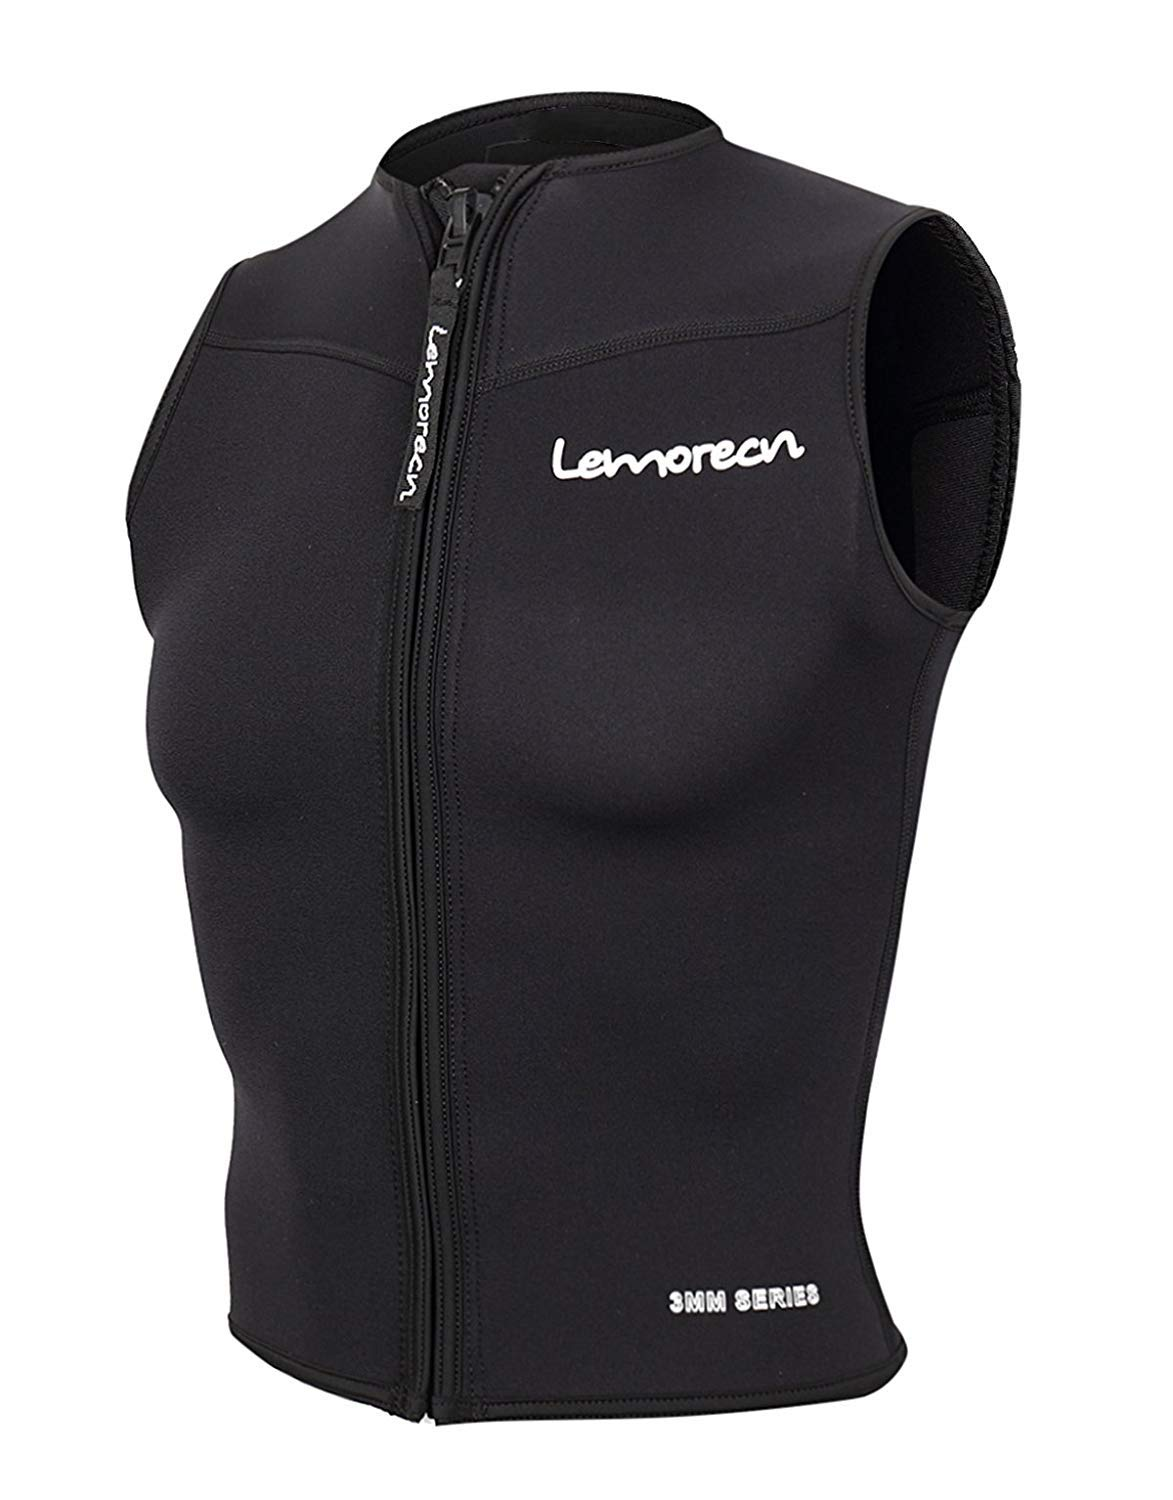 Lemorecn Mens Wetsuits Top Premium Neoprene 3mm Zipper Diving Vest (2095black-L) by Lemorecn